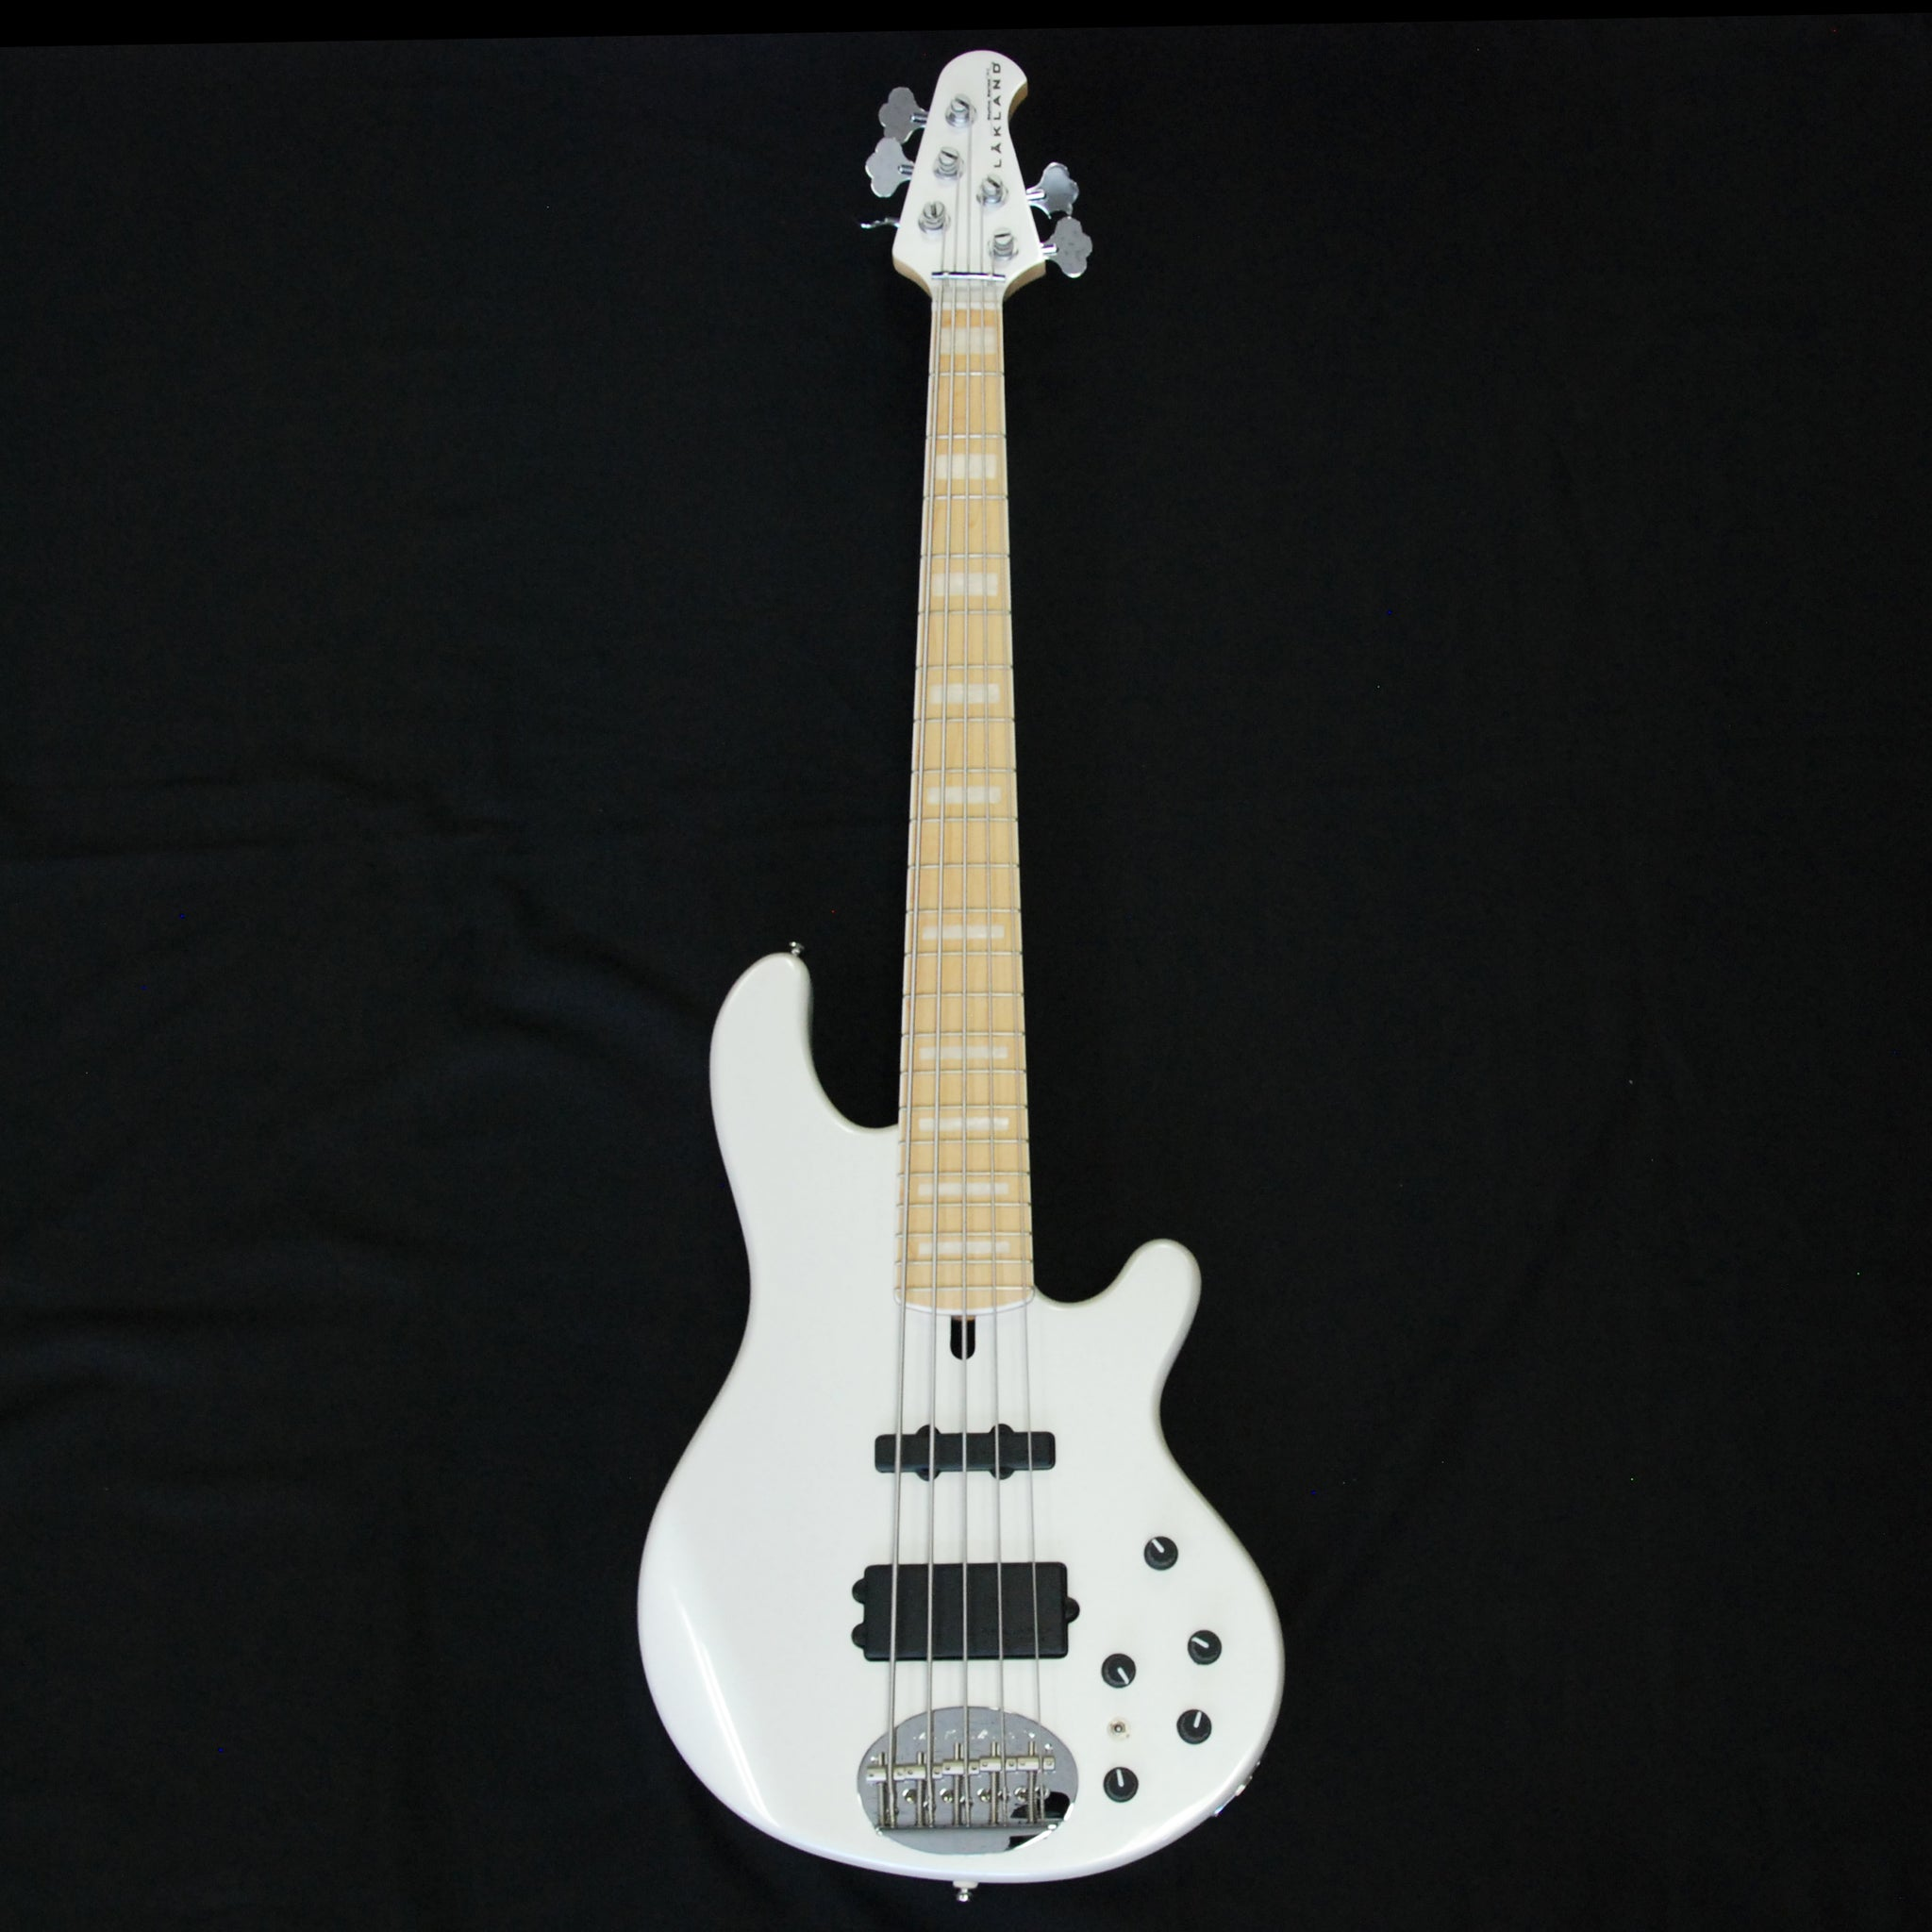 Shop online for Lakland Skyline Series 55-02 Custom Pearl White 5 String Electric Bass Guitar today.  Now available for purchase from Midlothian Music of Orland Park, Illinois, USA